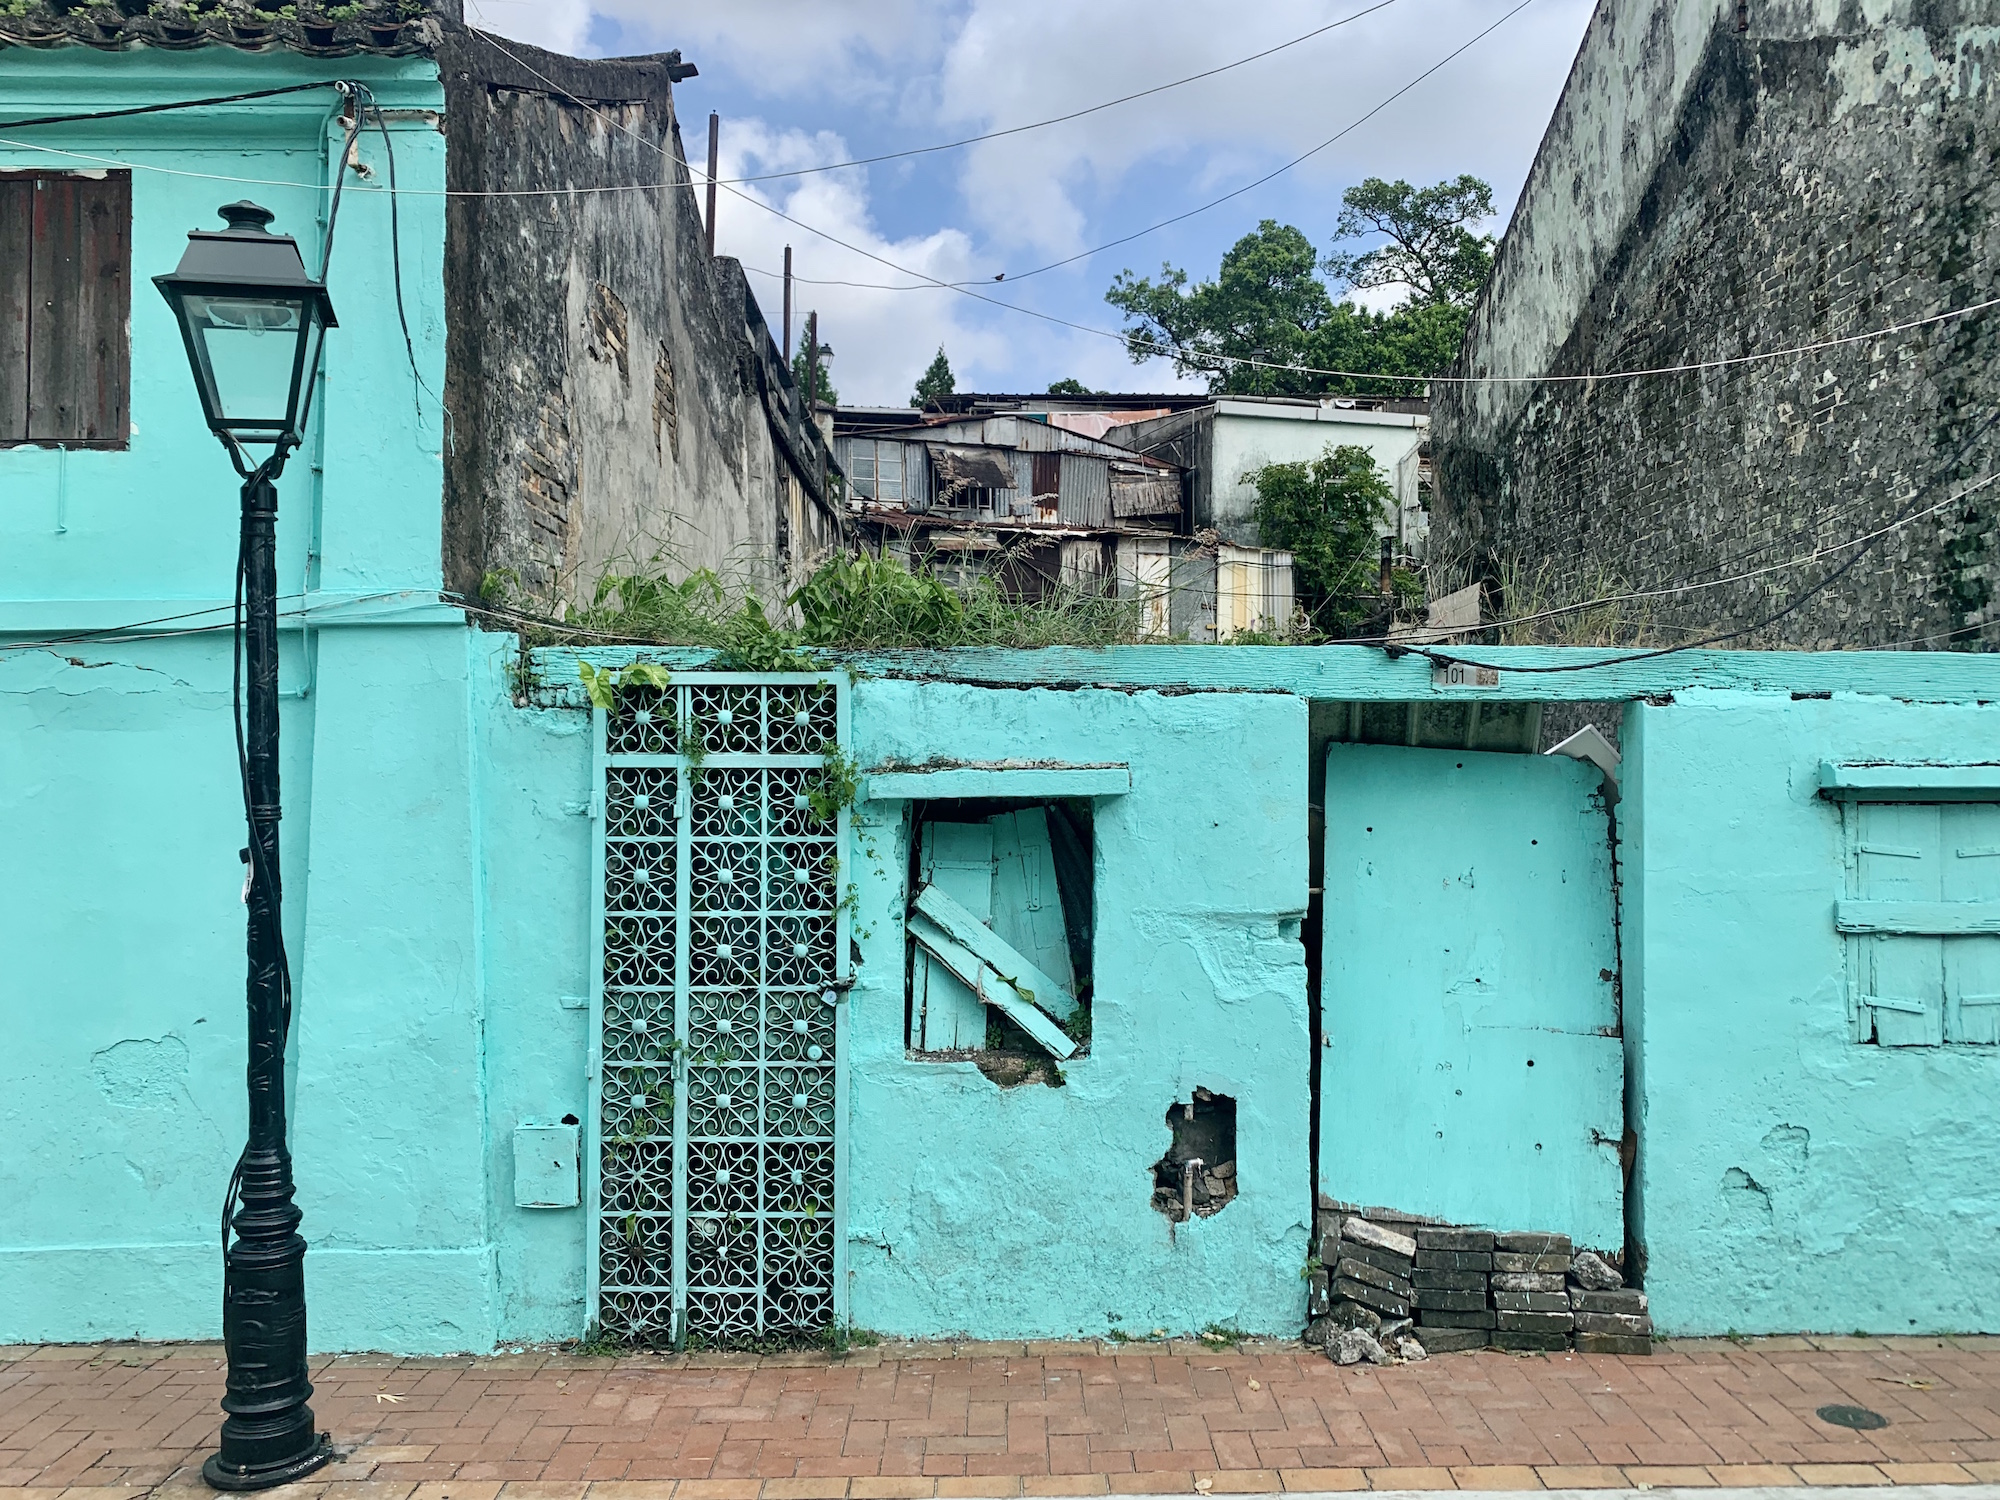 Old Blue Buildings Exterior in Taipa Village Macau Lifestyle